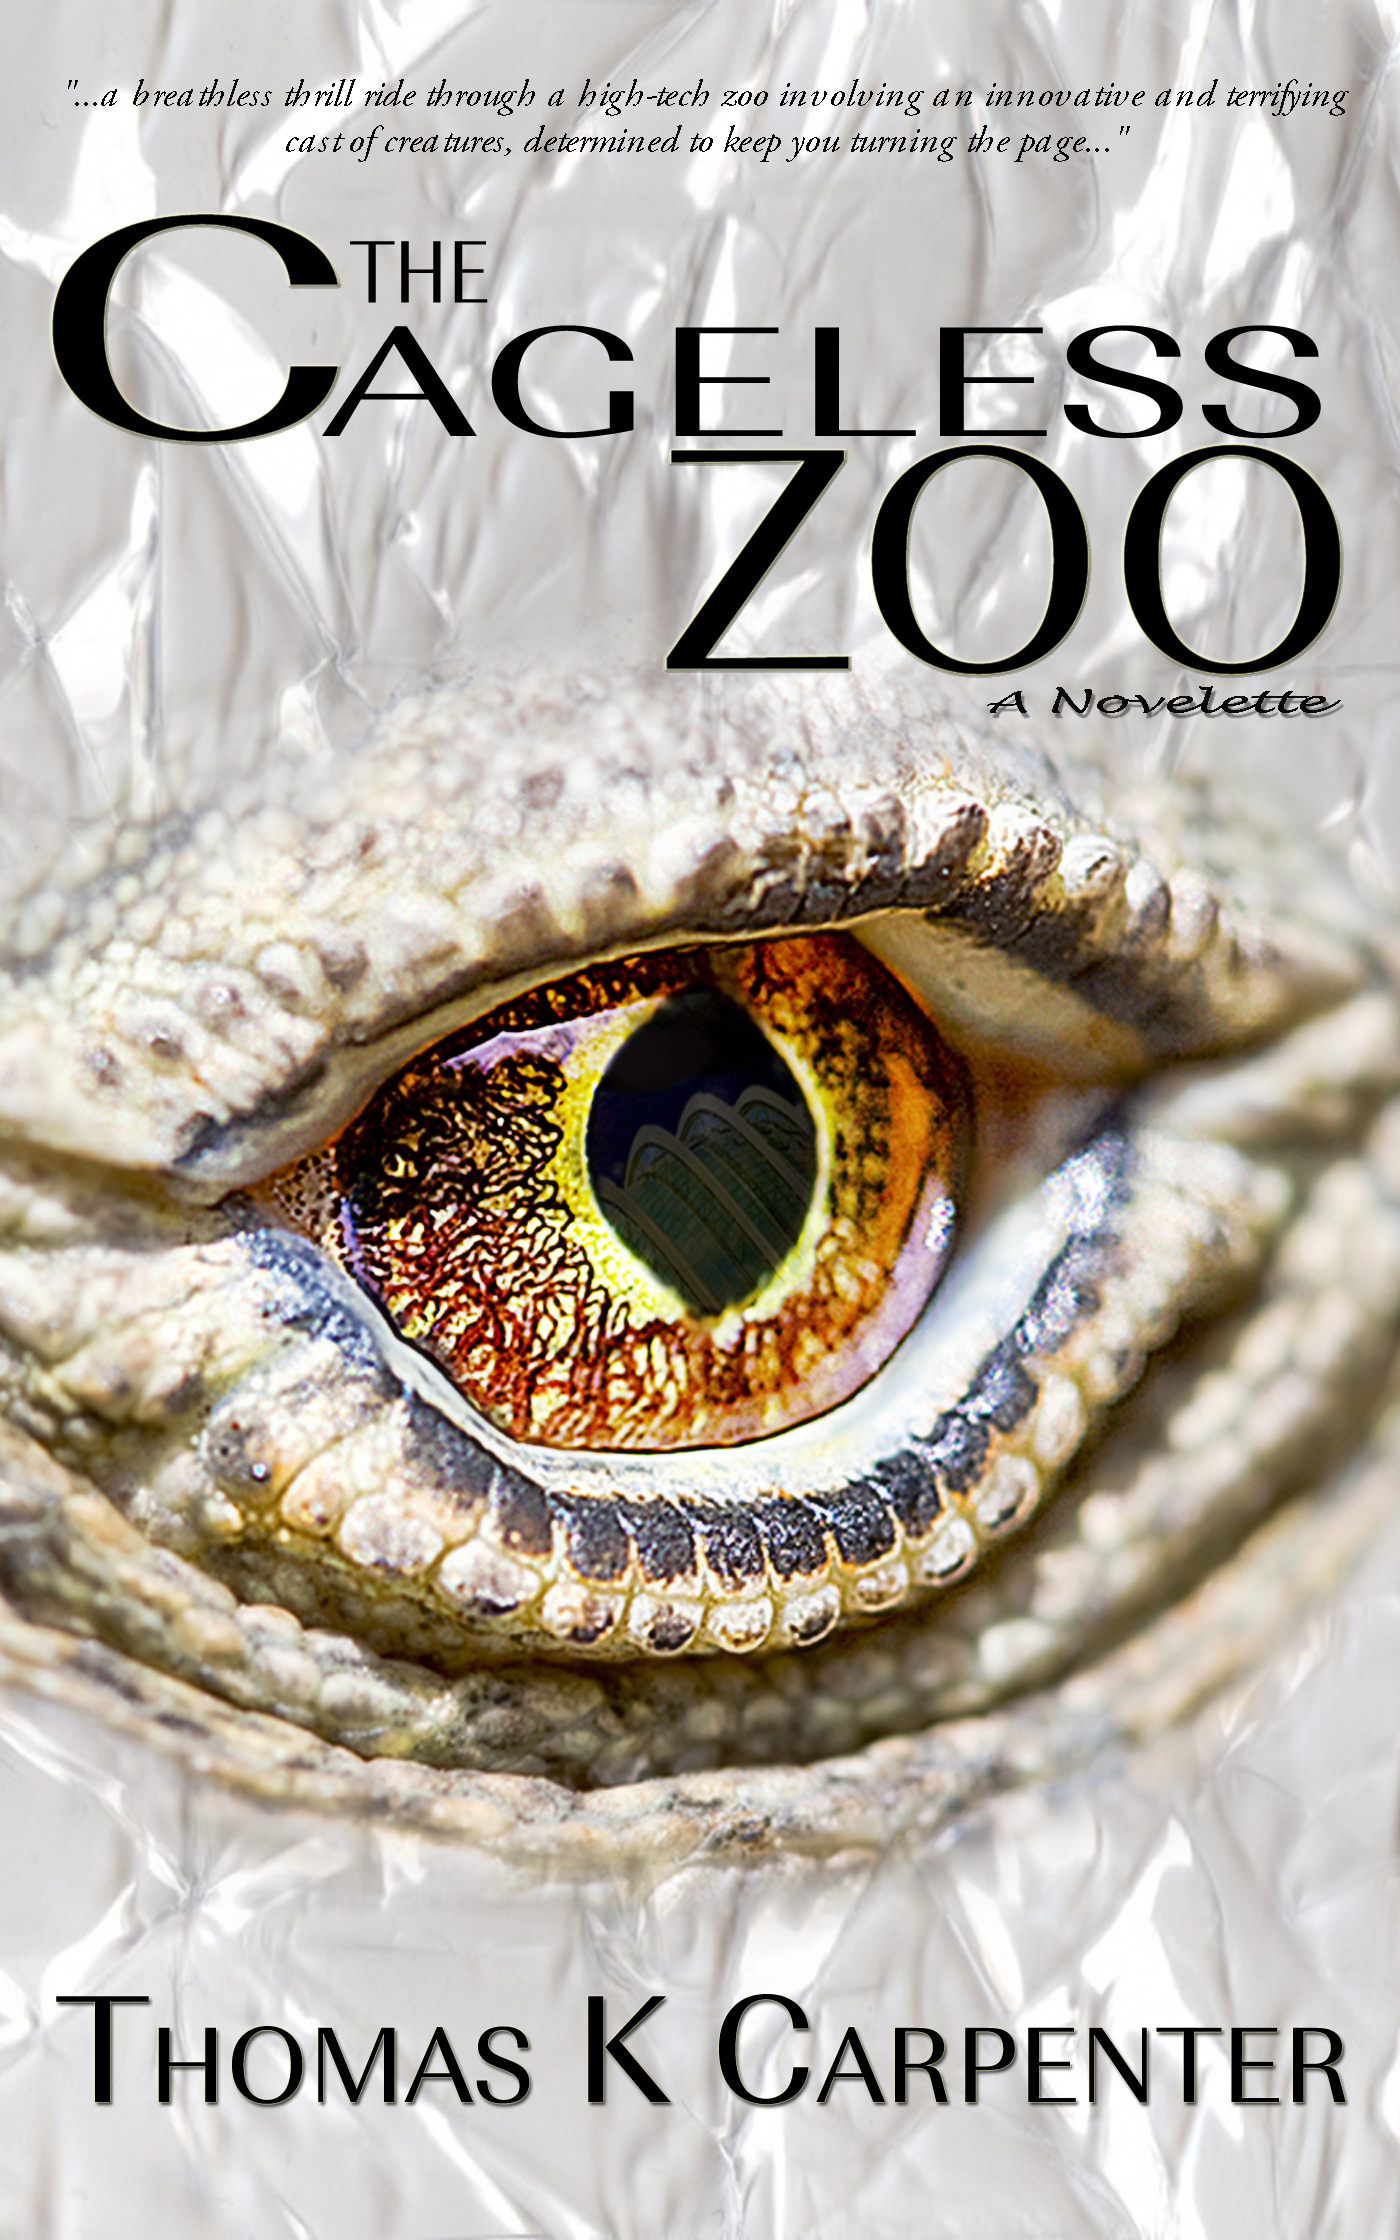 The Cageless Zoo, a novelette by Thomas K. Carpenter